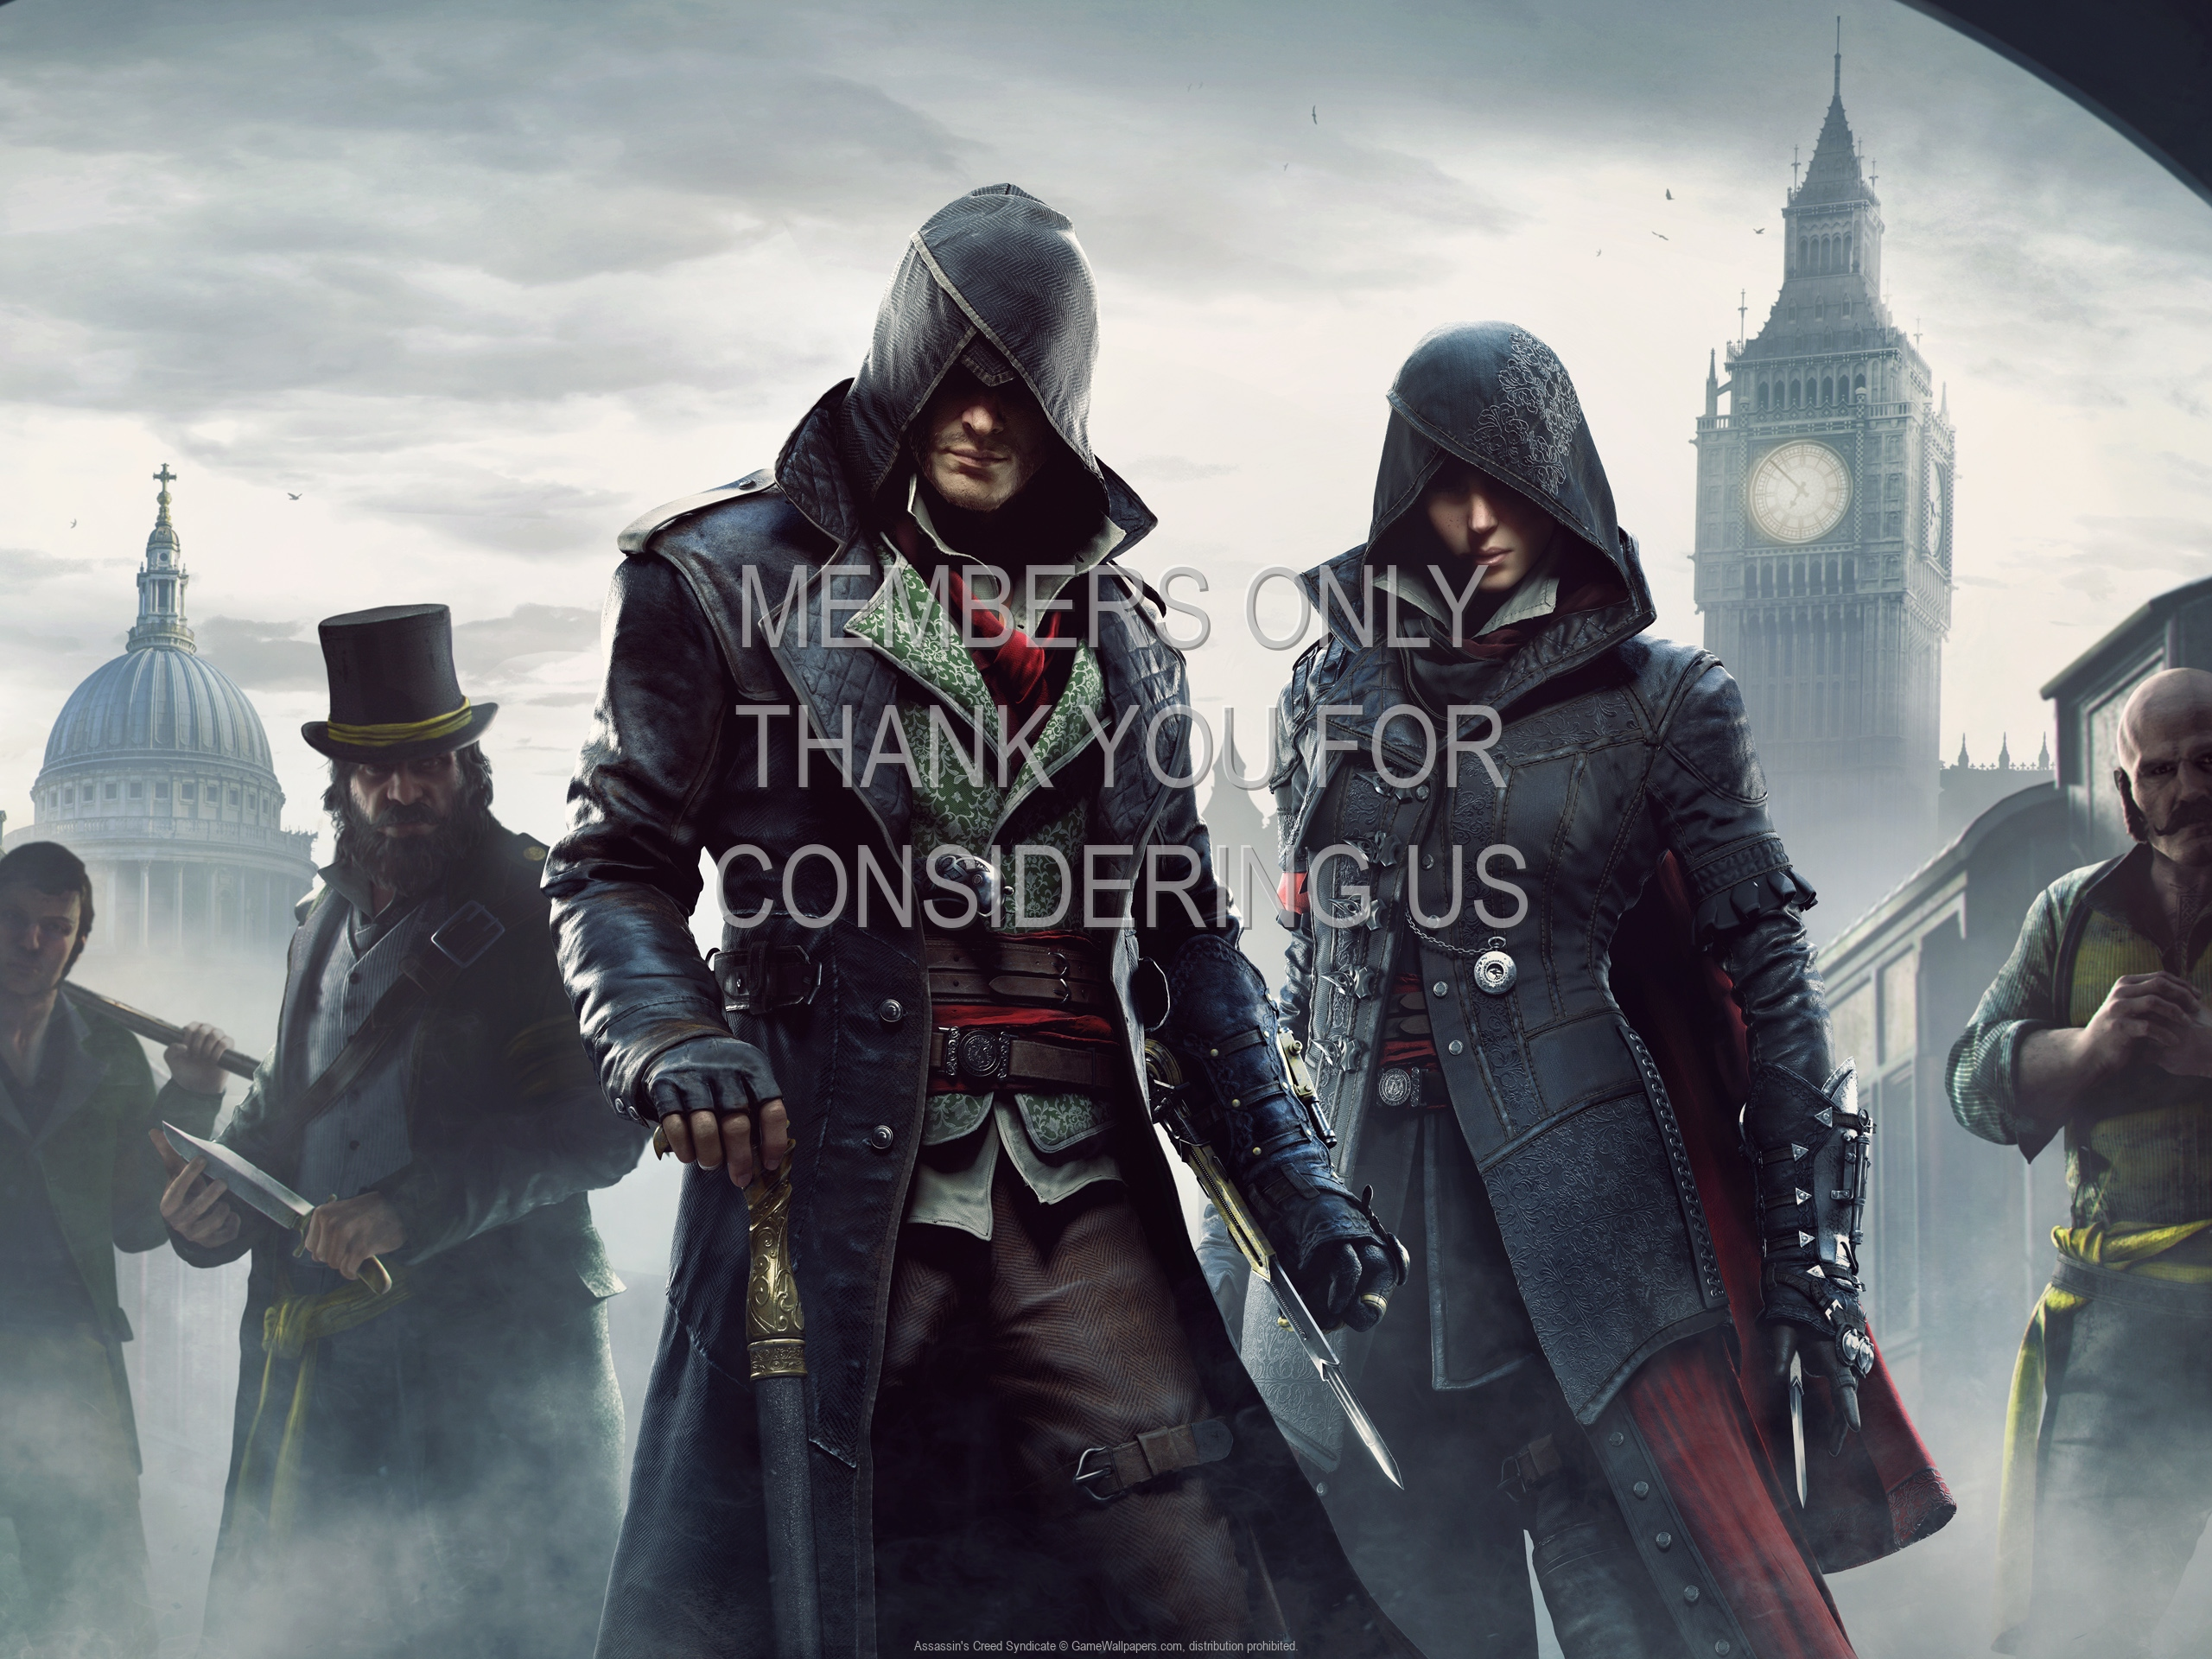 Assassin's Creed: Syndicate 1920x1080 Mobile wallpaper or background 05